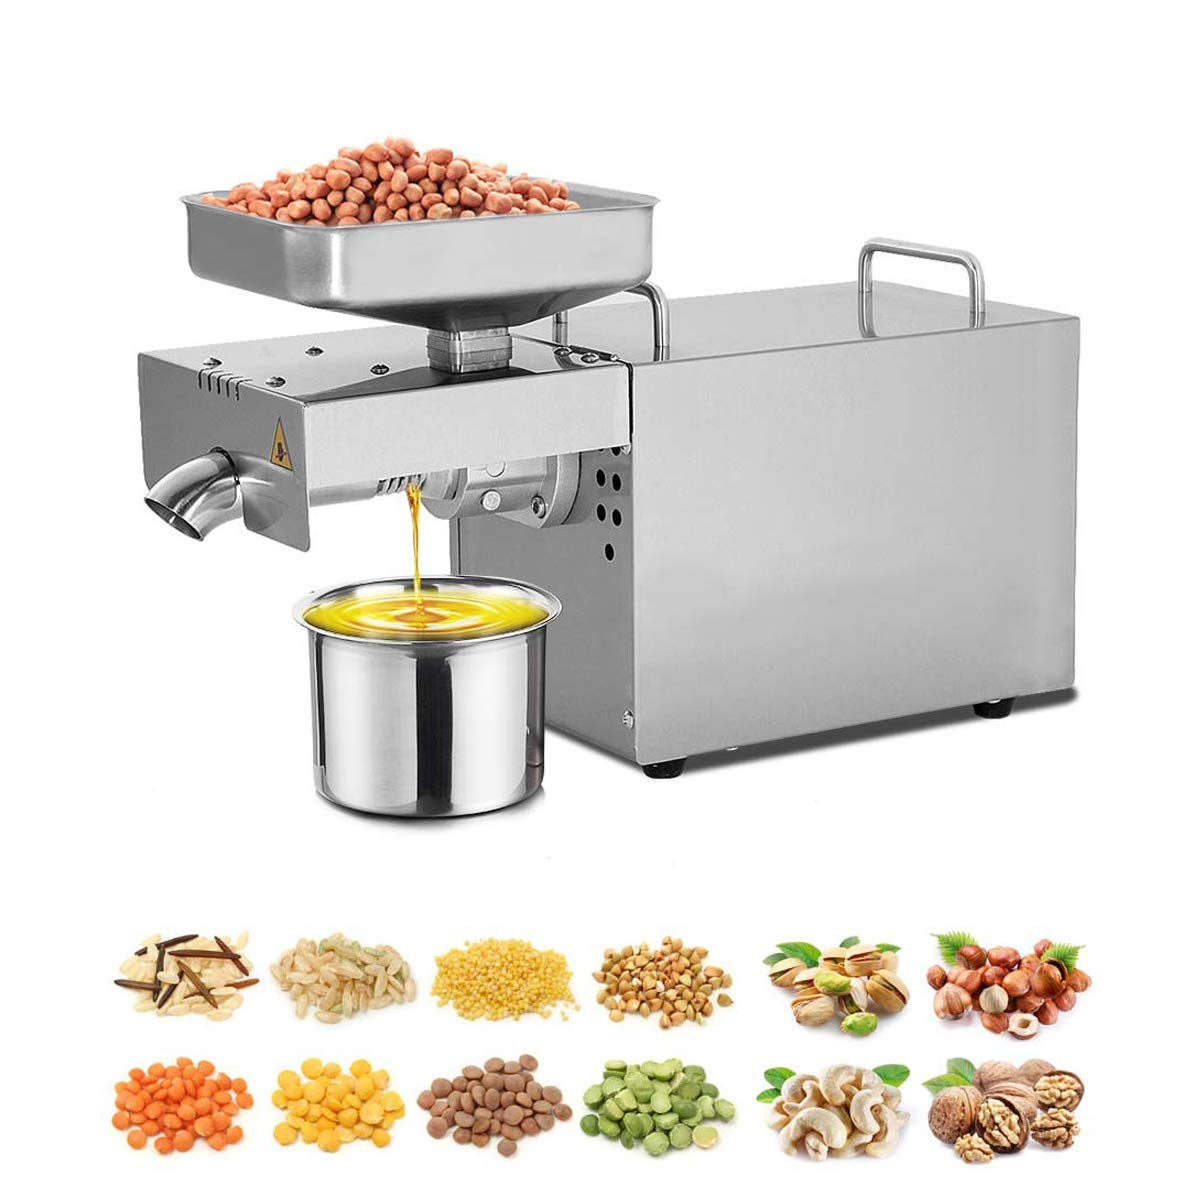 WooBrit Oil Press Machine Cold Hot Nuts Oil Expeller Commercial Home Automatic Food-Grade Stainless Steel Extractor for Peanut Seeds